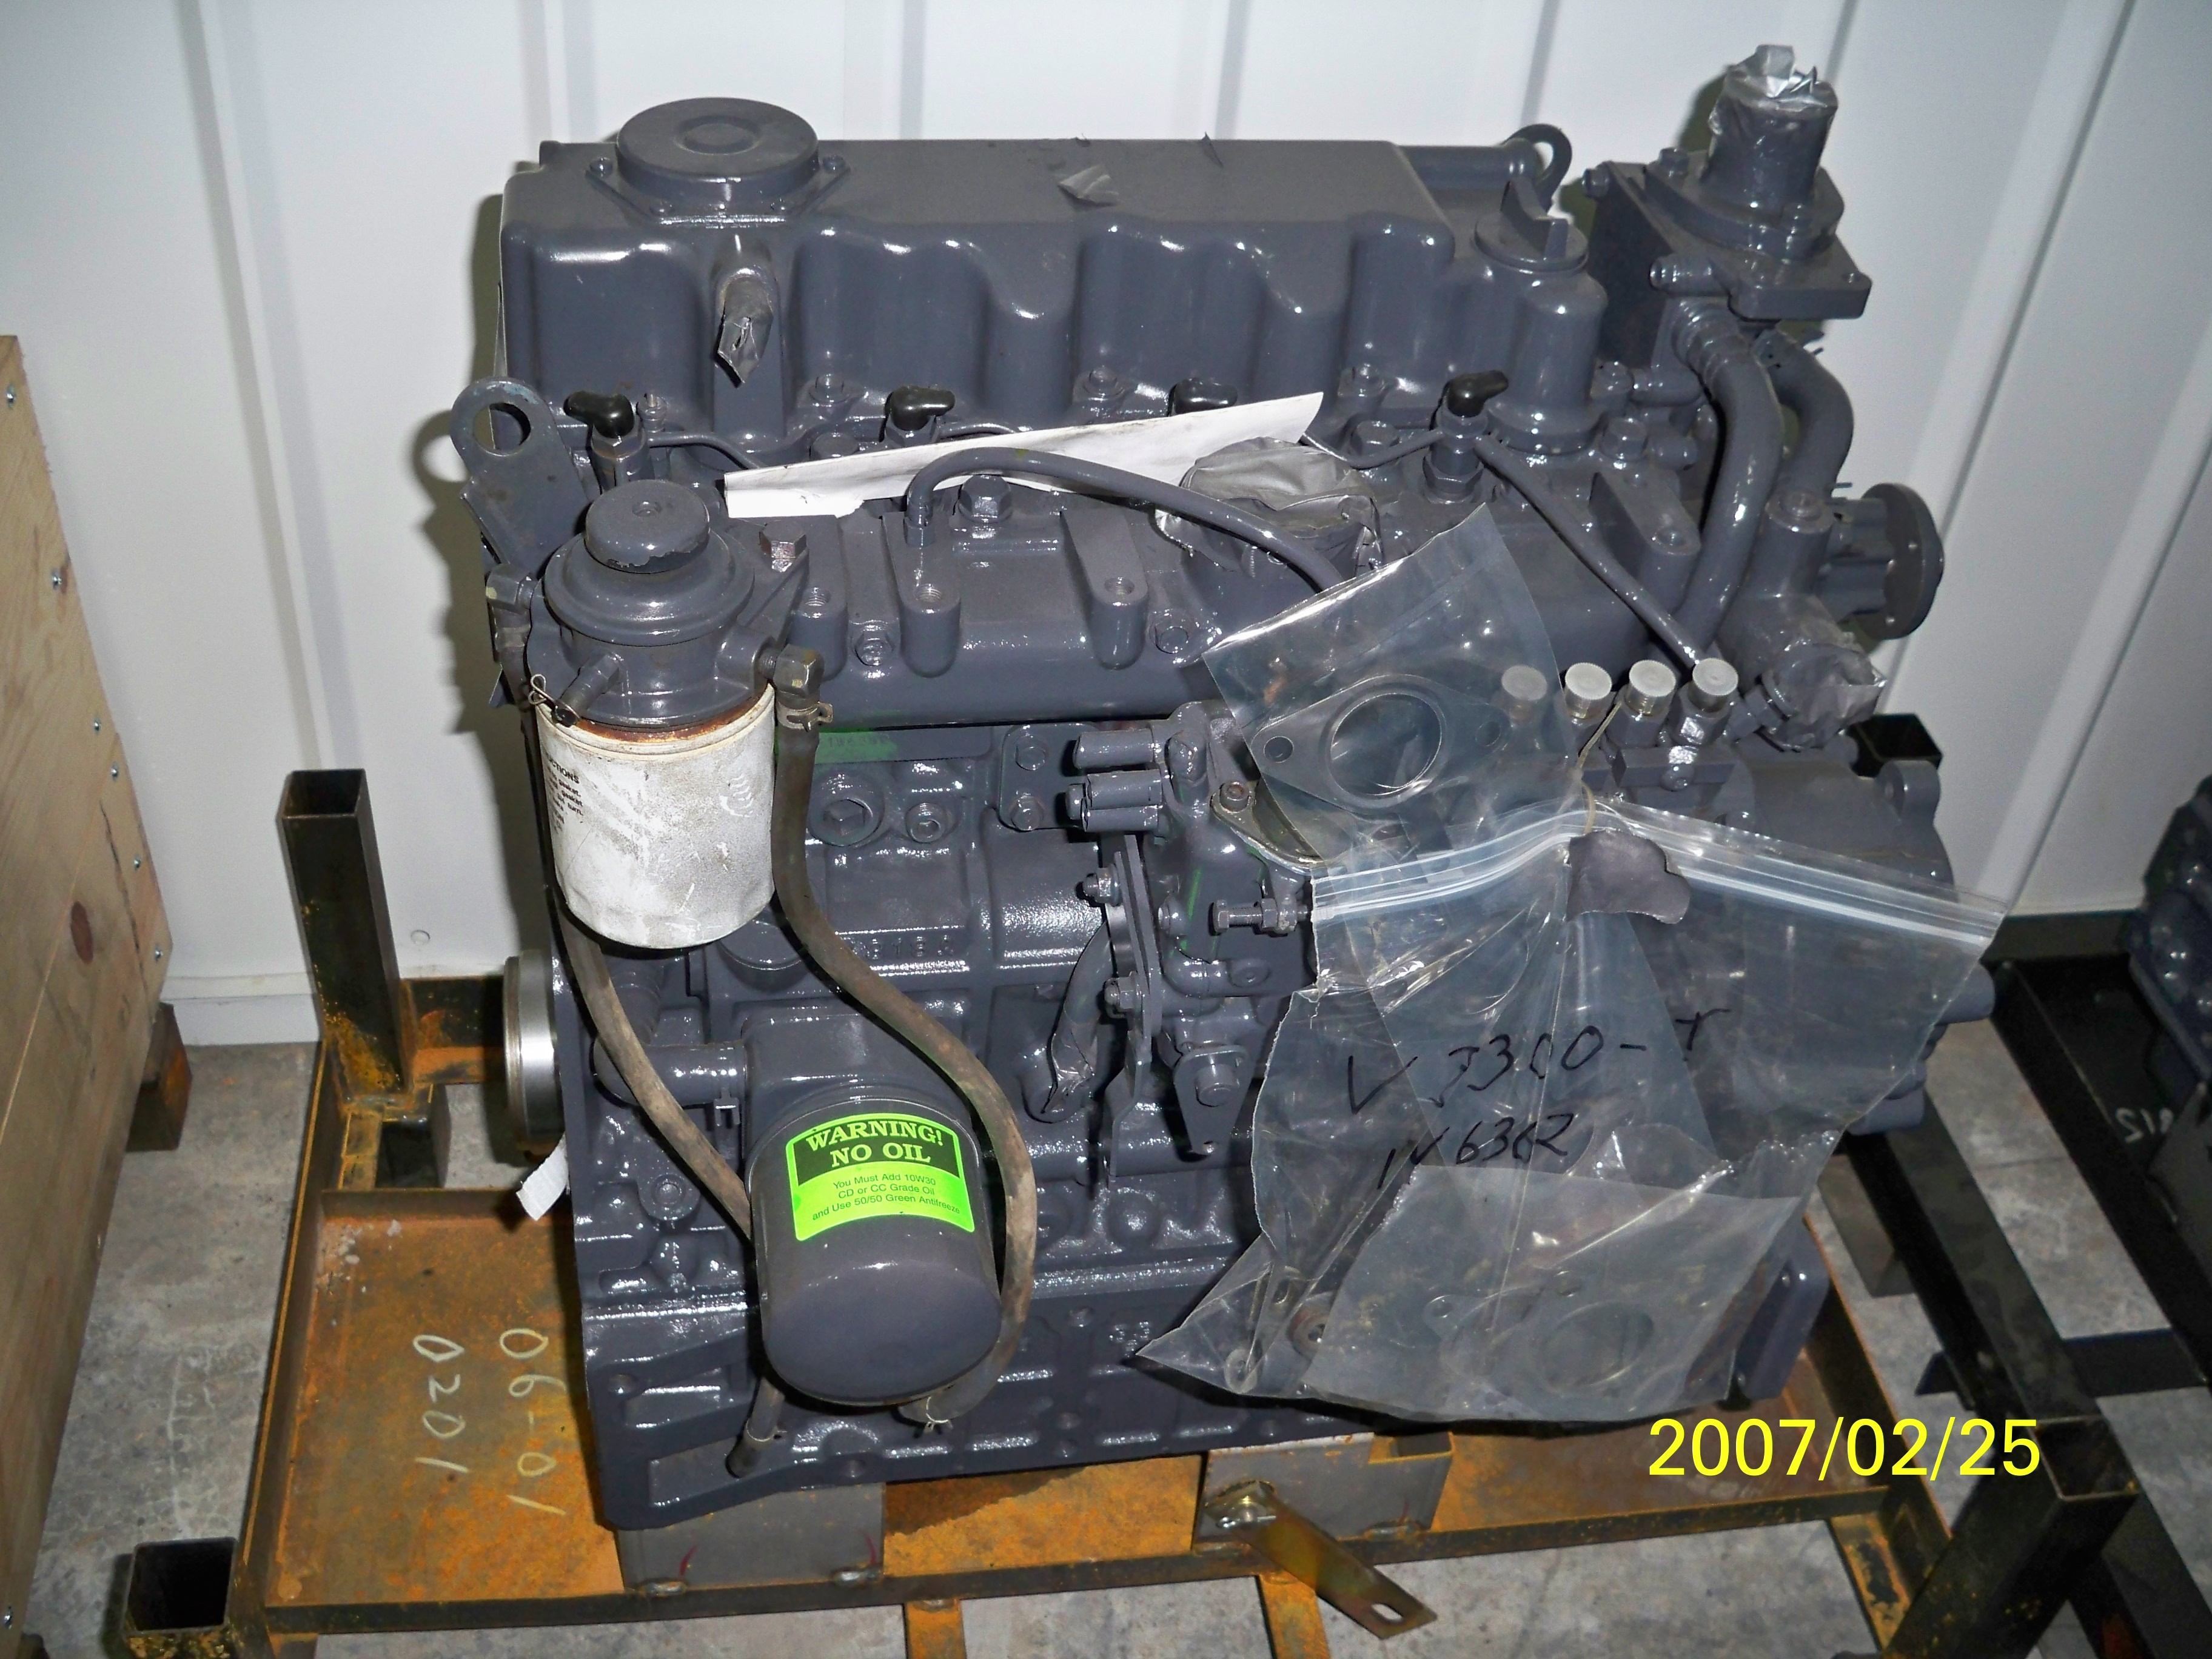 0 Kubota Reman Engines To Fit Kubota Tractors For Sale in Orrville, OH -  Equipment Trader